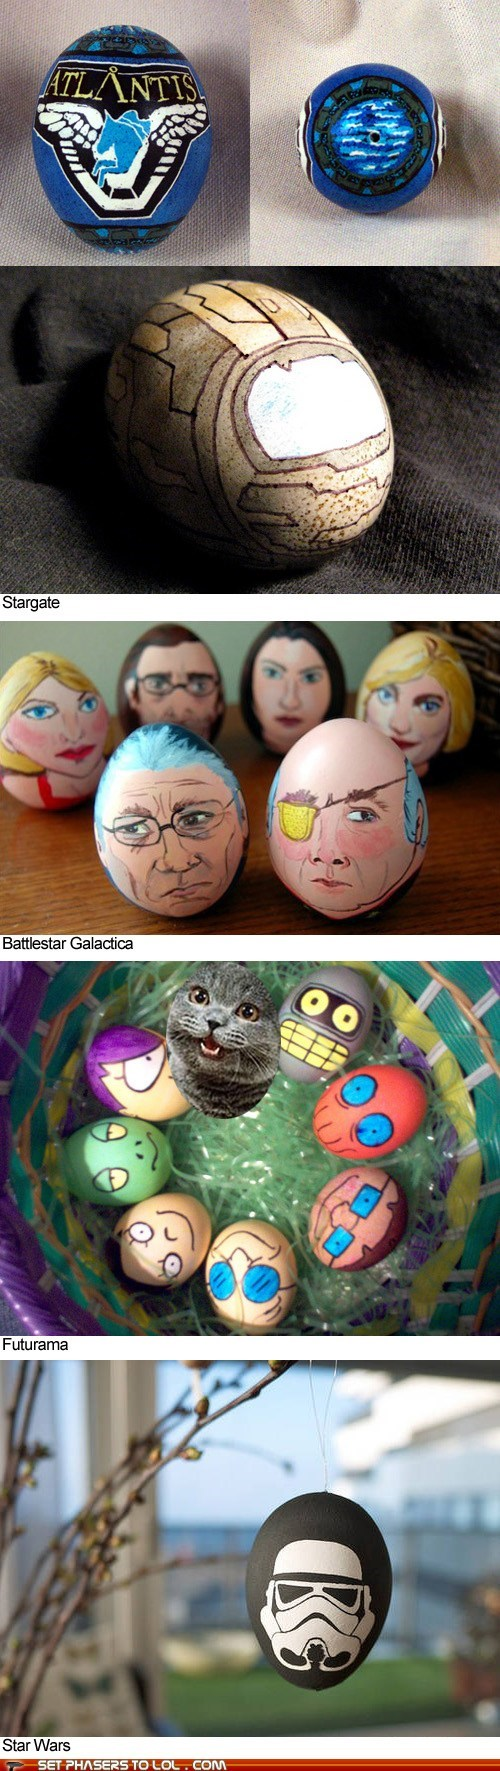 Battlestar Galactica,dye,easter,easter eggs,futurama,geeky,science fiction,star wars,Stargate